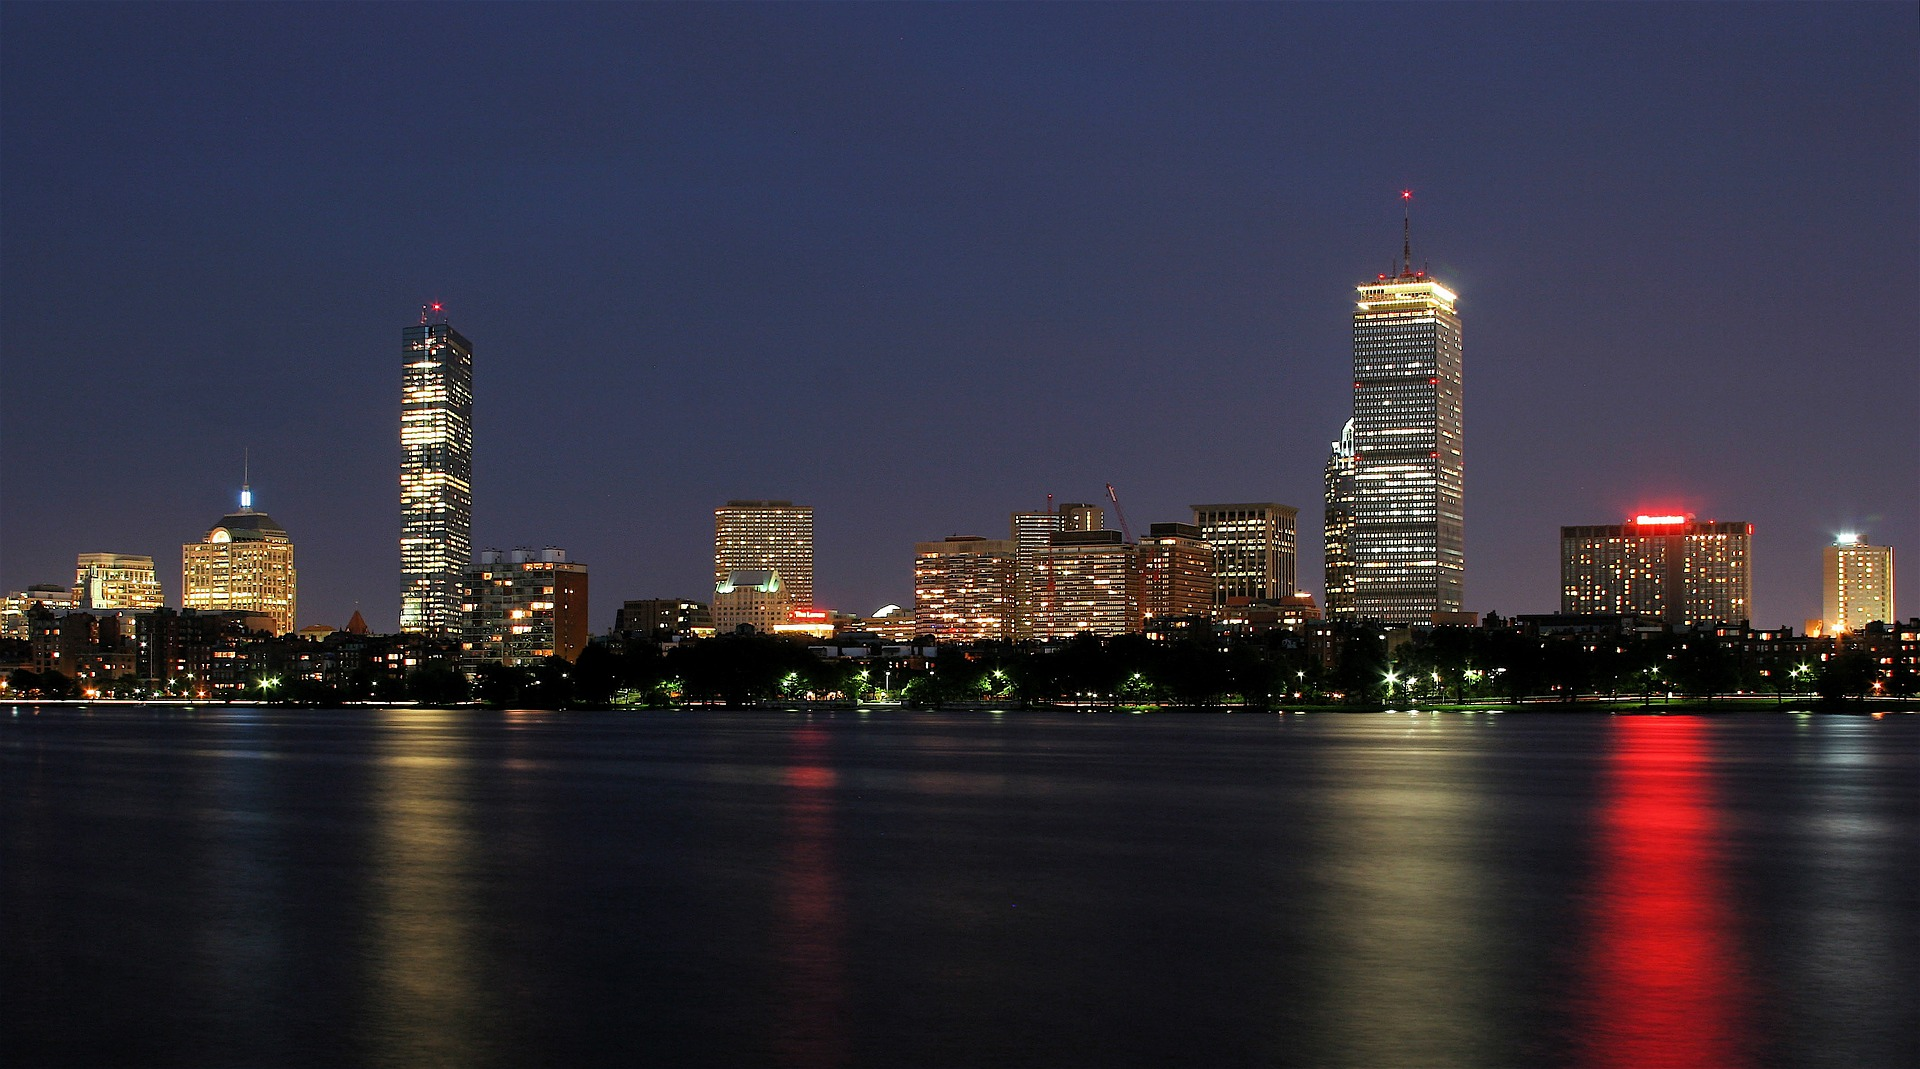 Walk the Boston Freedom Trail or just sit and stare at the beautiful Boston skyline on a babymoon